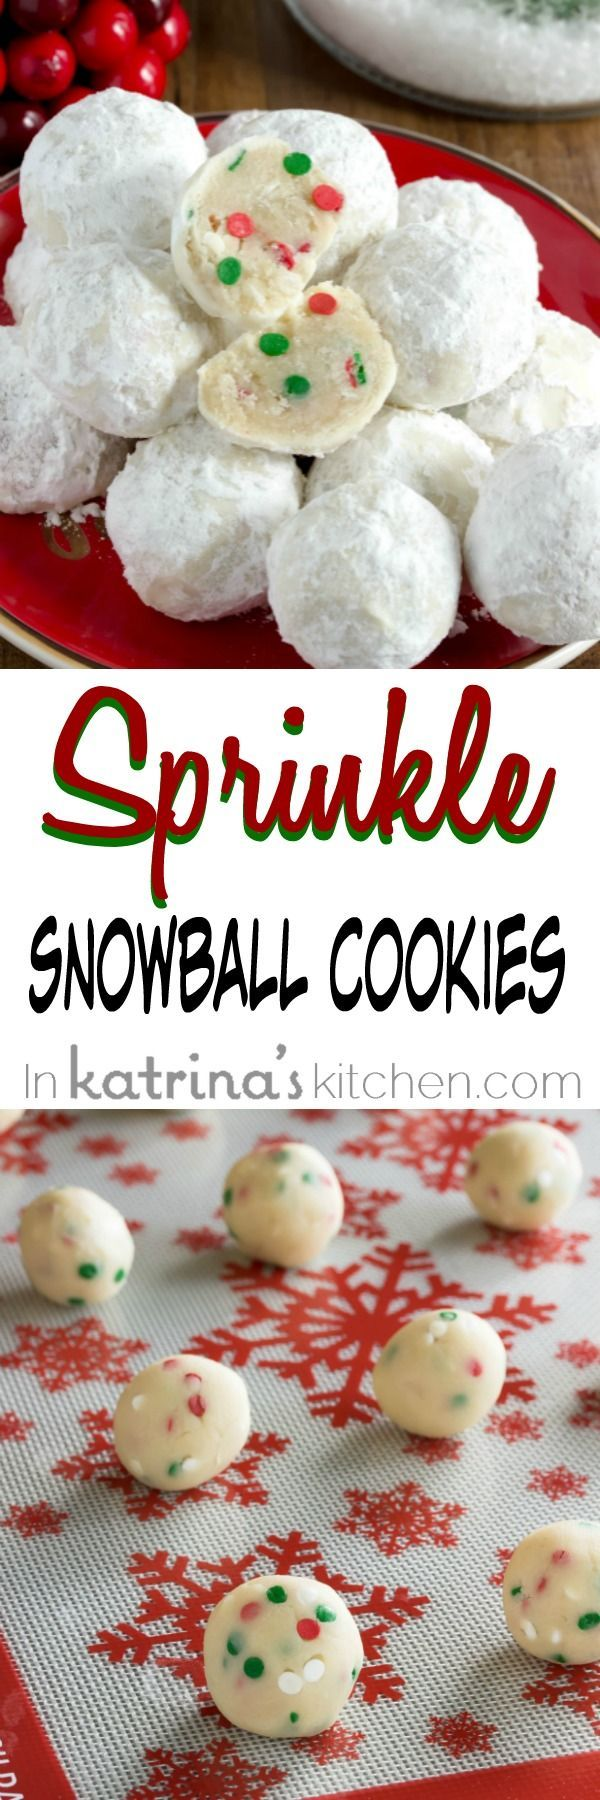 Sprinkle Snowball Cookies Recipe allergy friendly recipe with NO NUTS